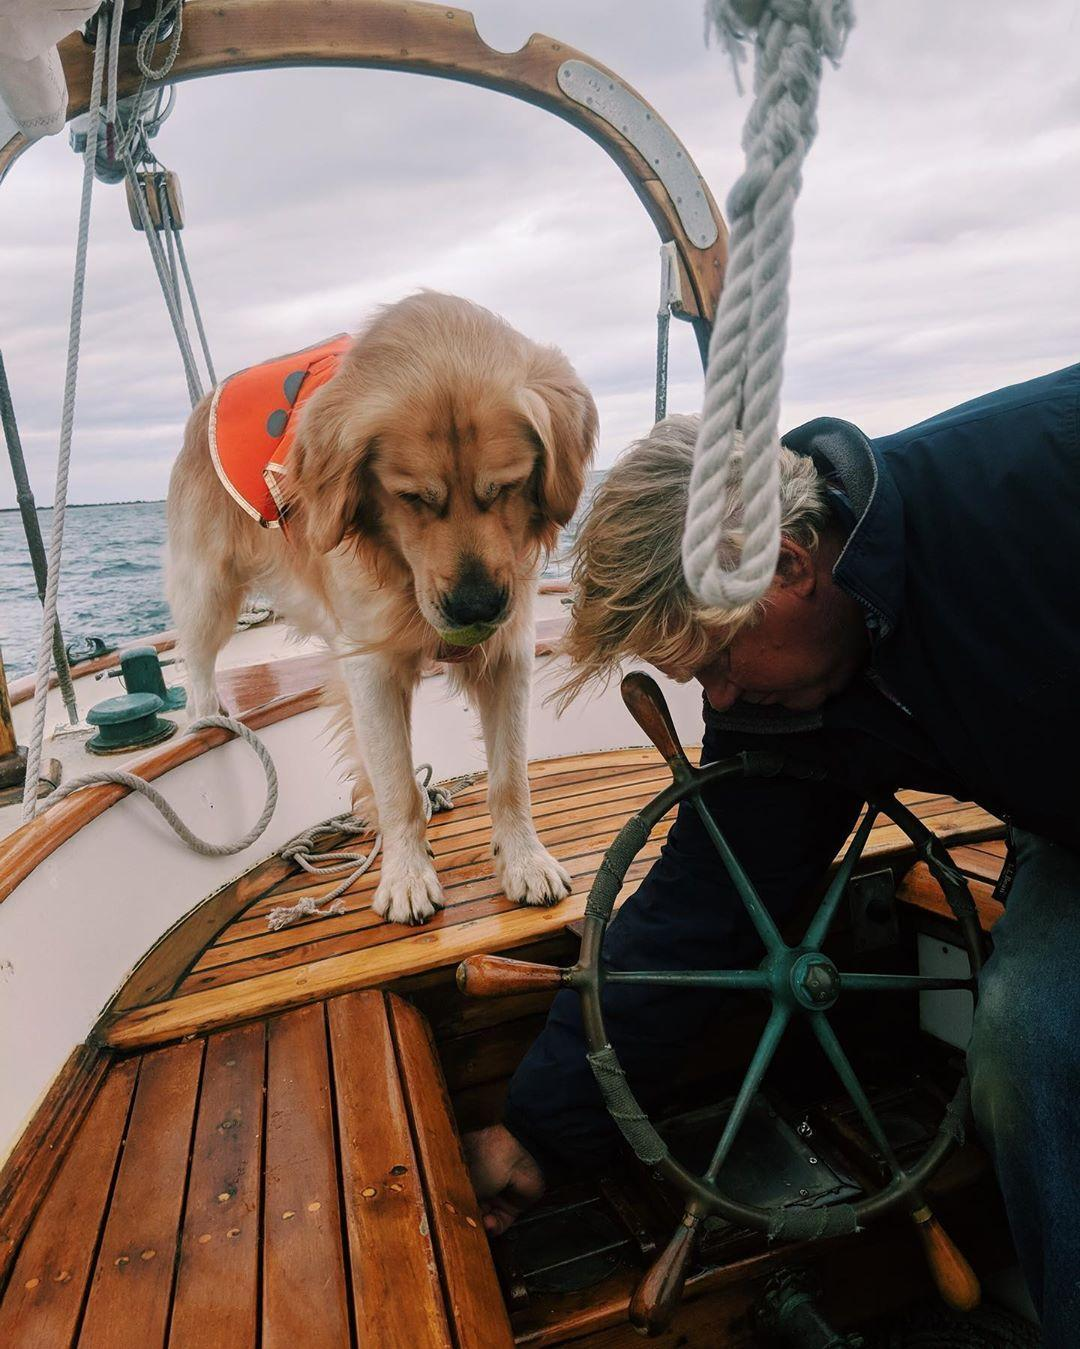 Sailing Nantucket Sound with your dog